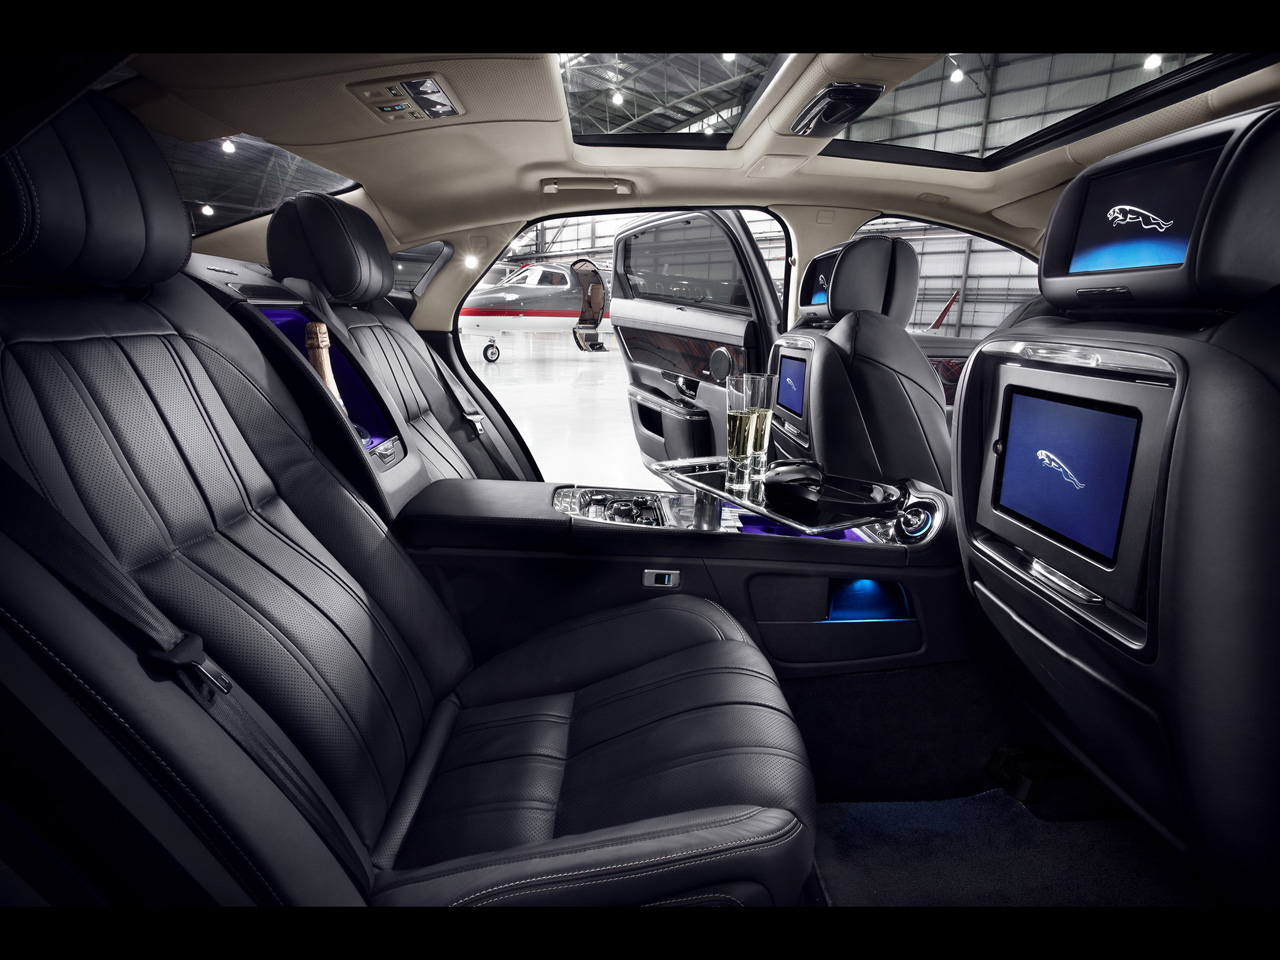 Jaguar XJ Ultimate - Interior